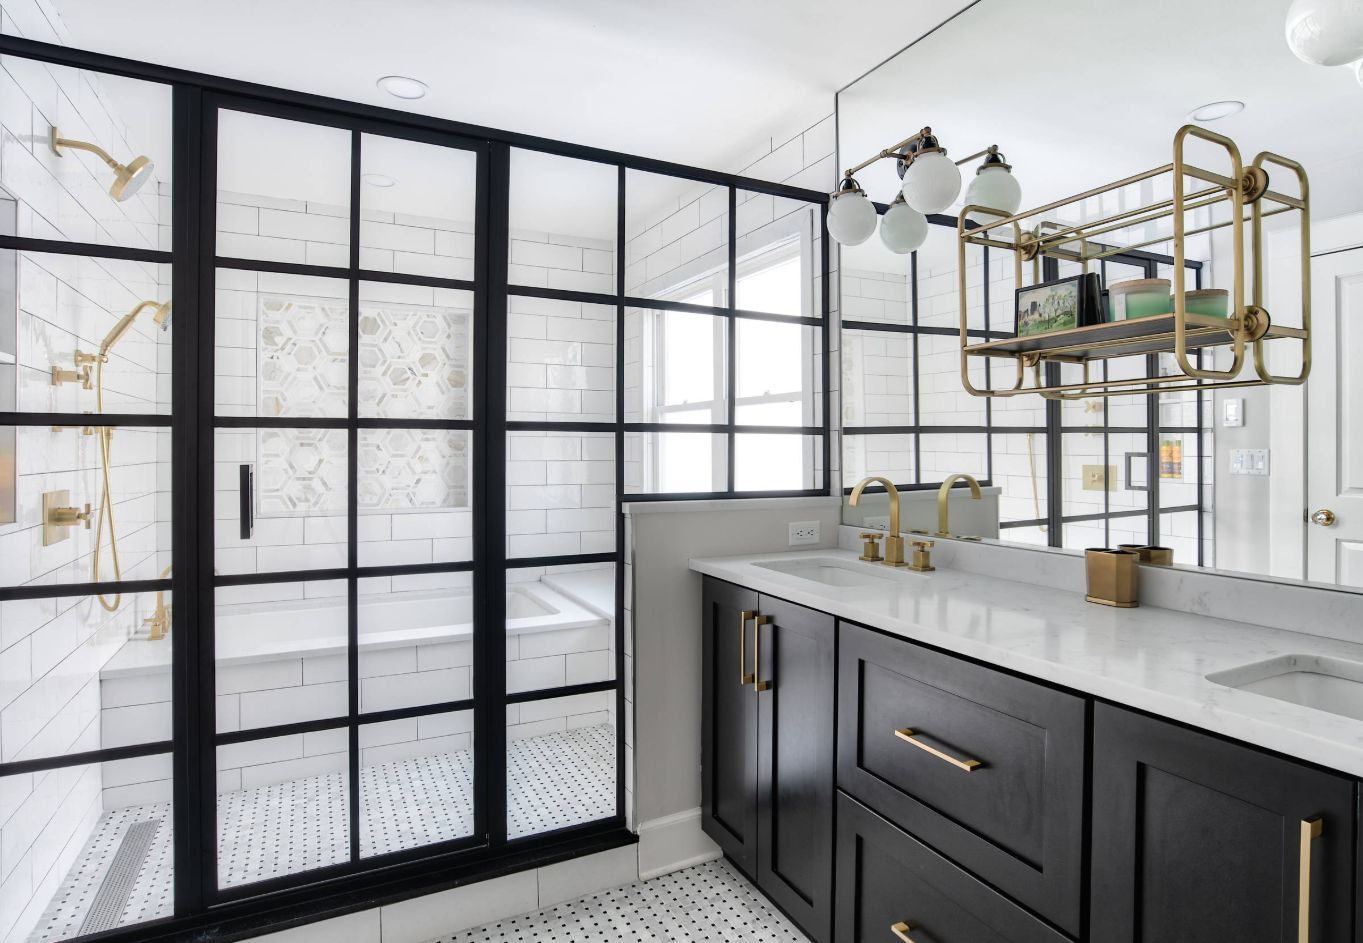 1558953966 788 black and white bathroom designs that show simple can also be interesting - Black and White Bathroom Designs That Show Simple Can Also Be Interesting